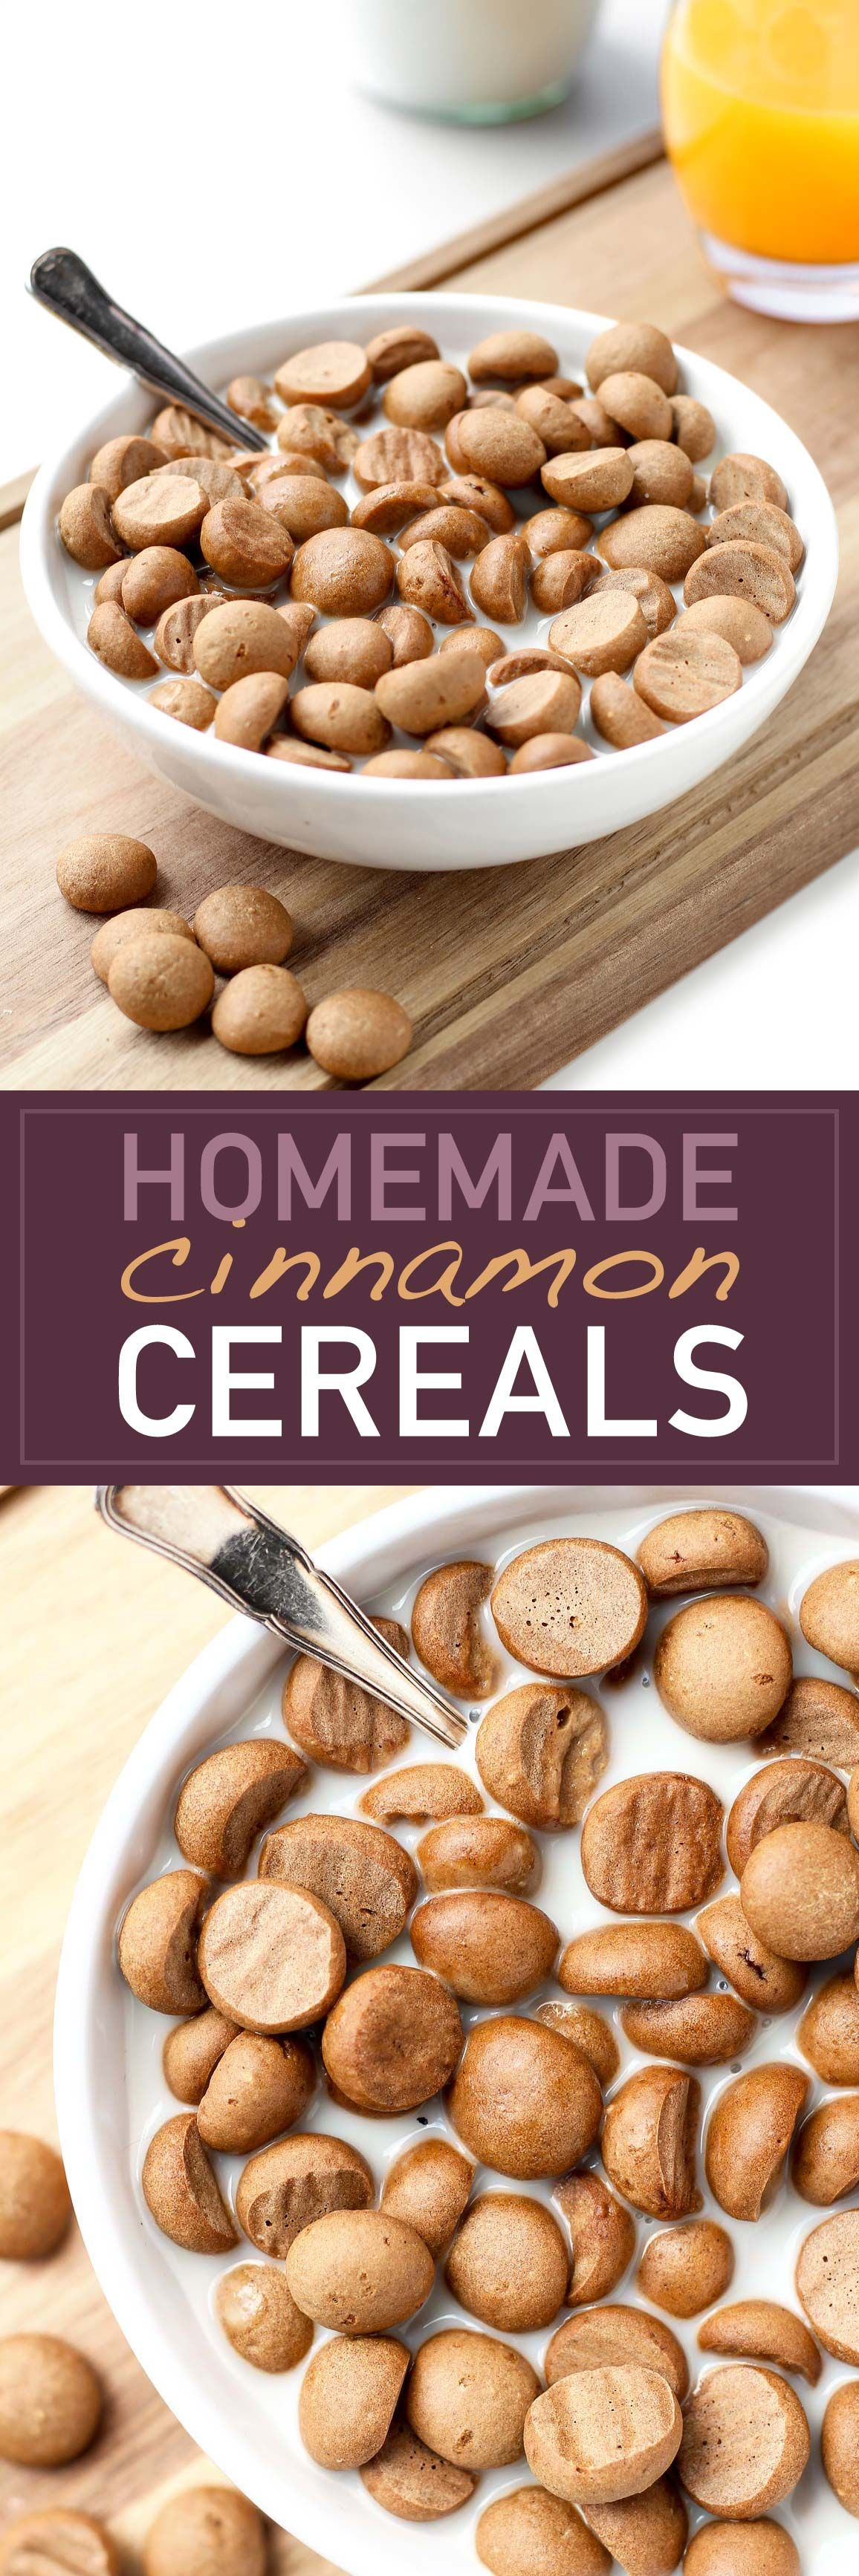 The best vegan cinnamon cereals recipe cinnamon cereal healthy homemade vegan cinnamon cereals that are crunchy spicy and easy to make perfect for ccuart Gallery